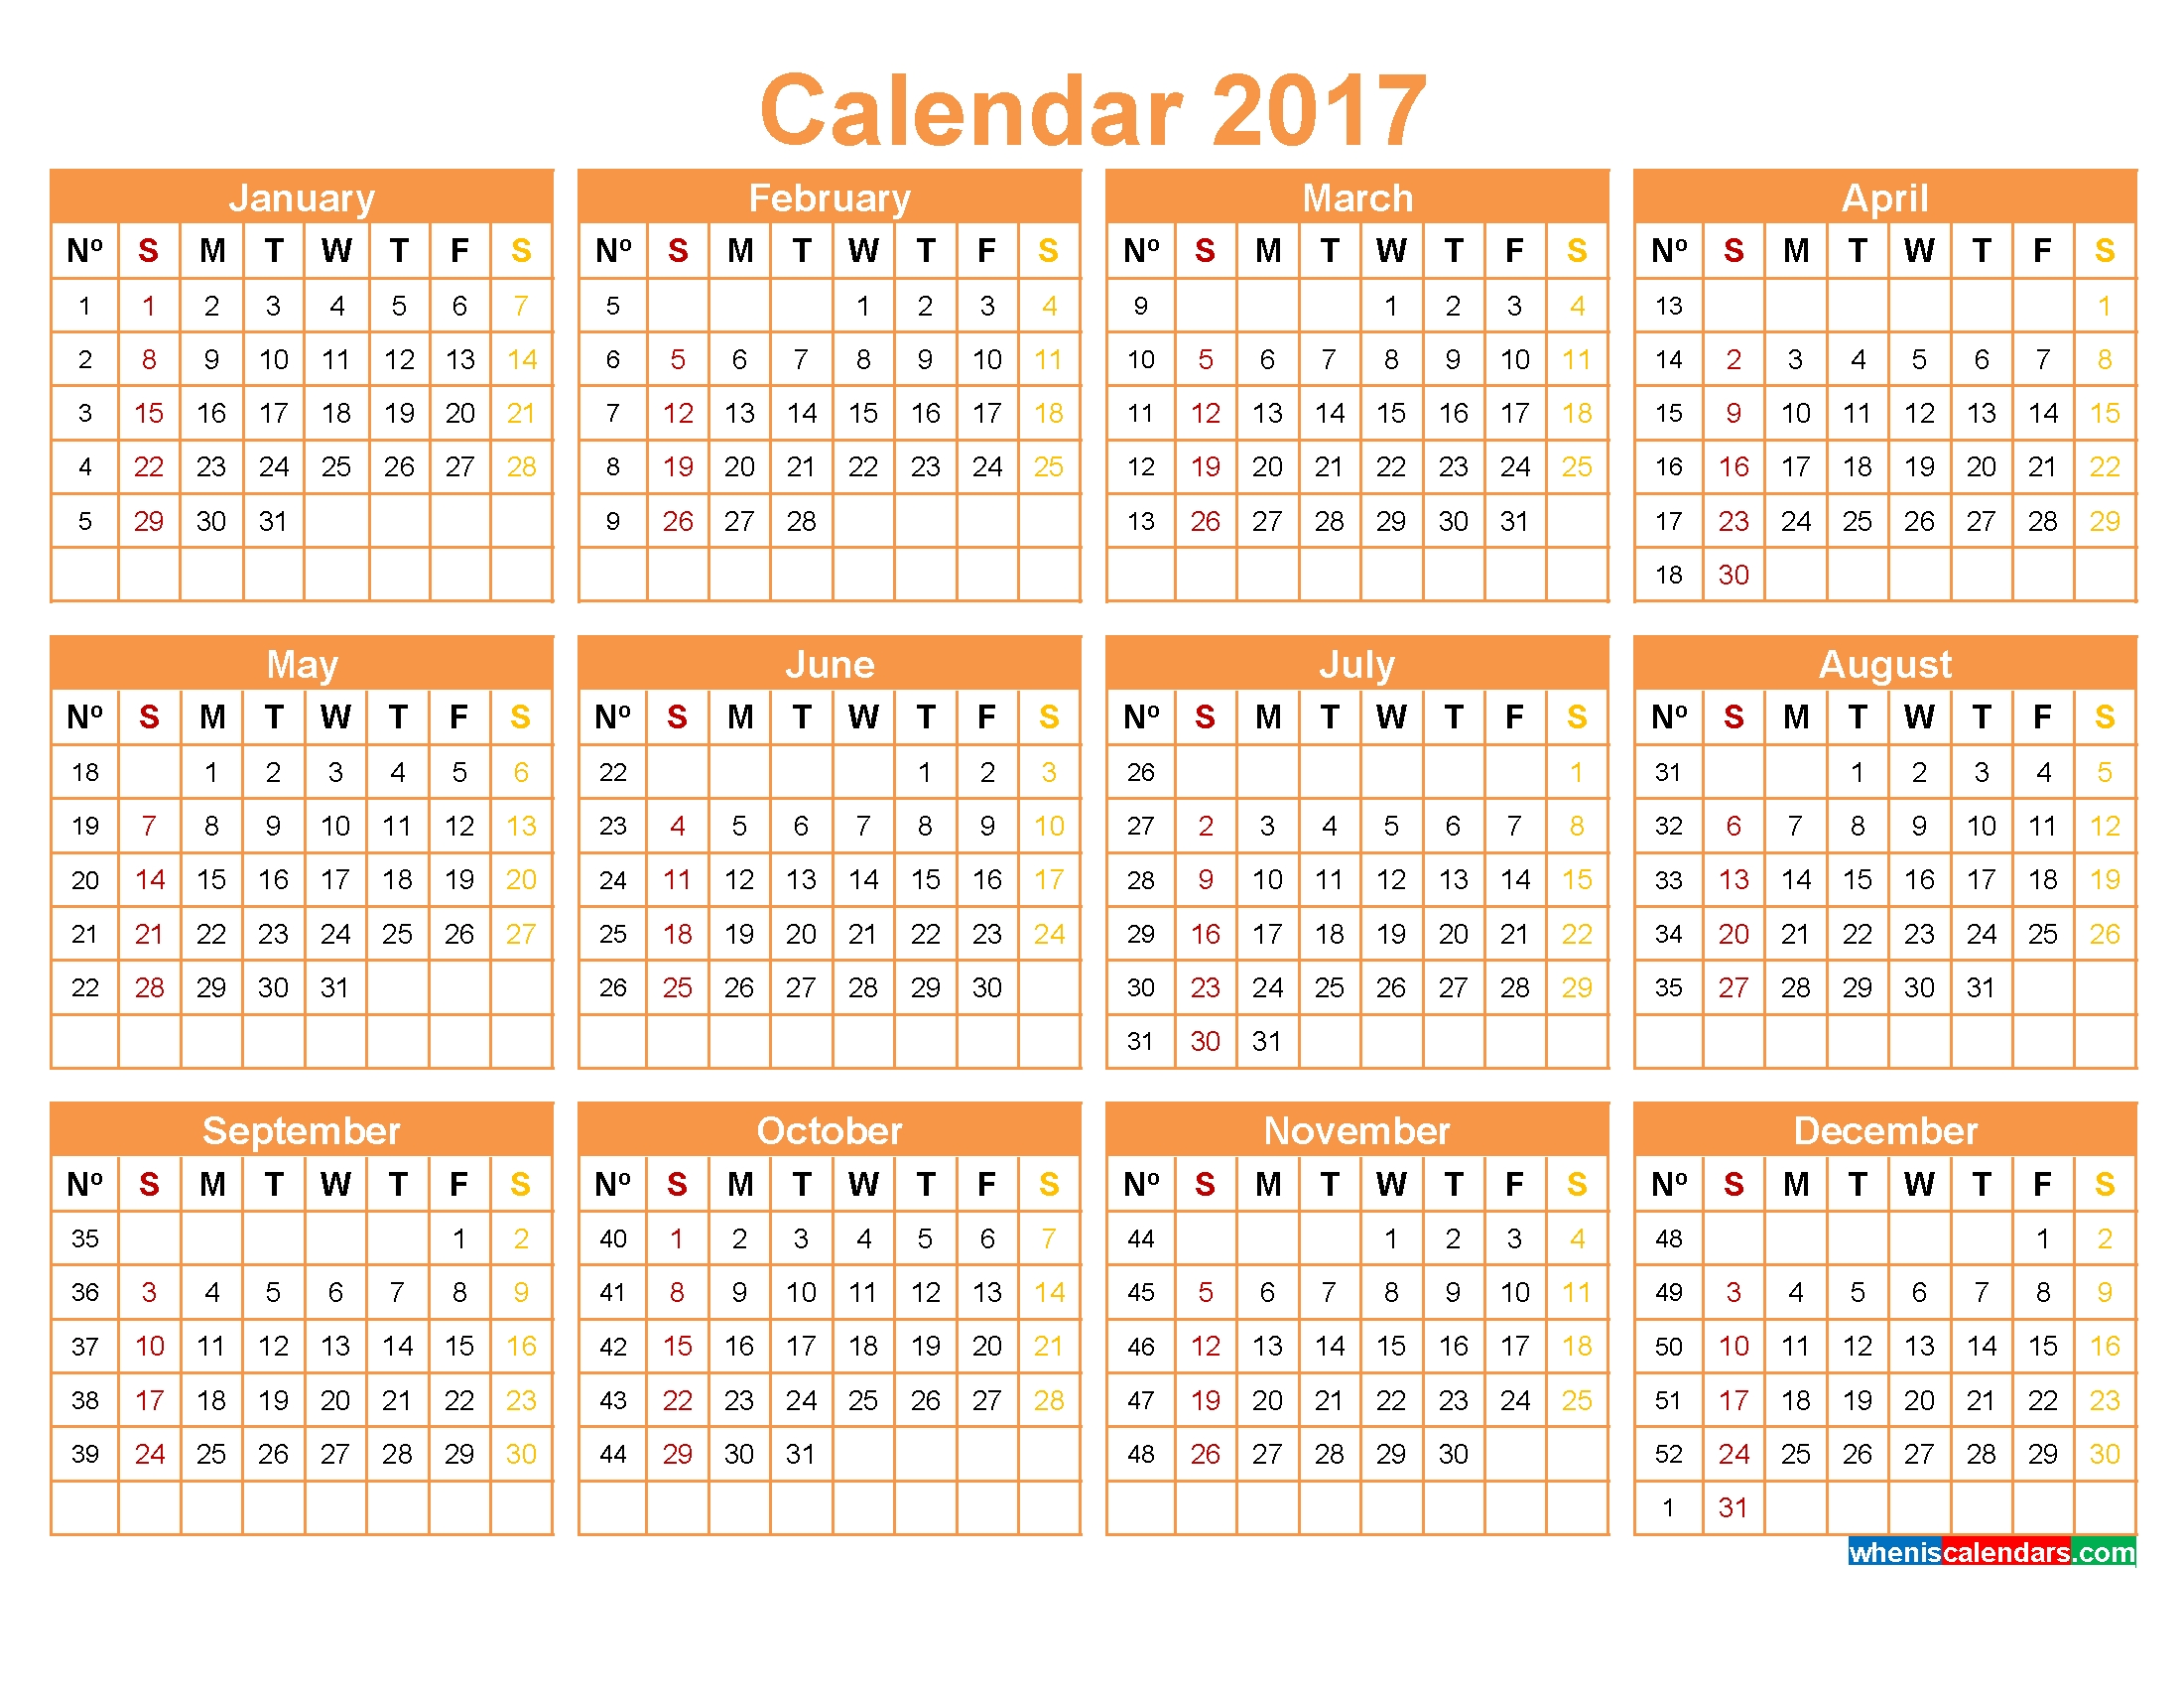 Calendar 2017 With Week Numbers Yearly Template 2018 2019 Stunning  Calendar Template With 194 Days